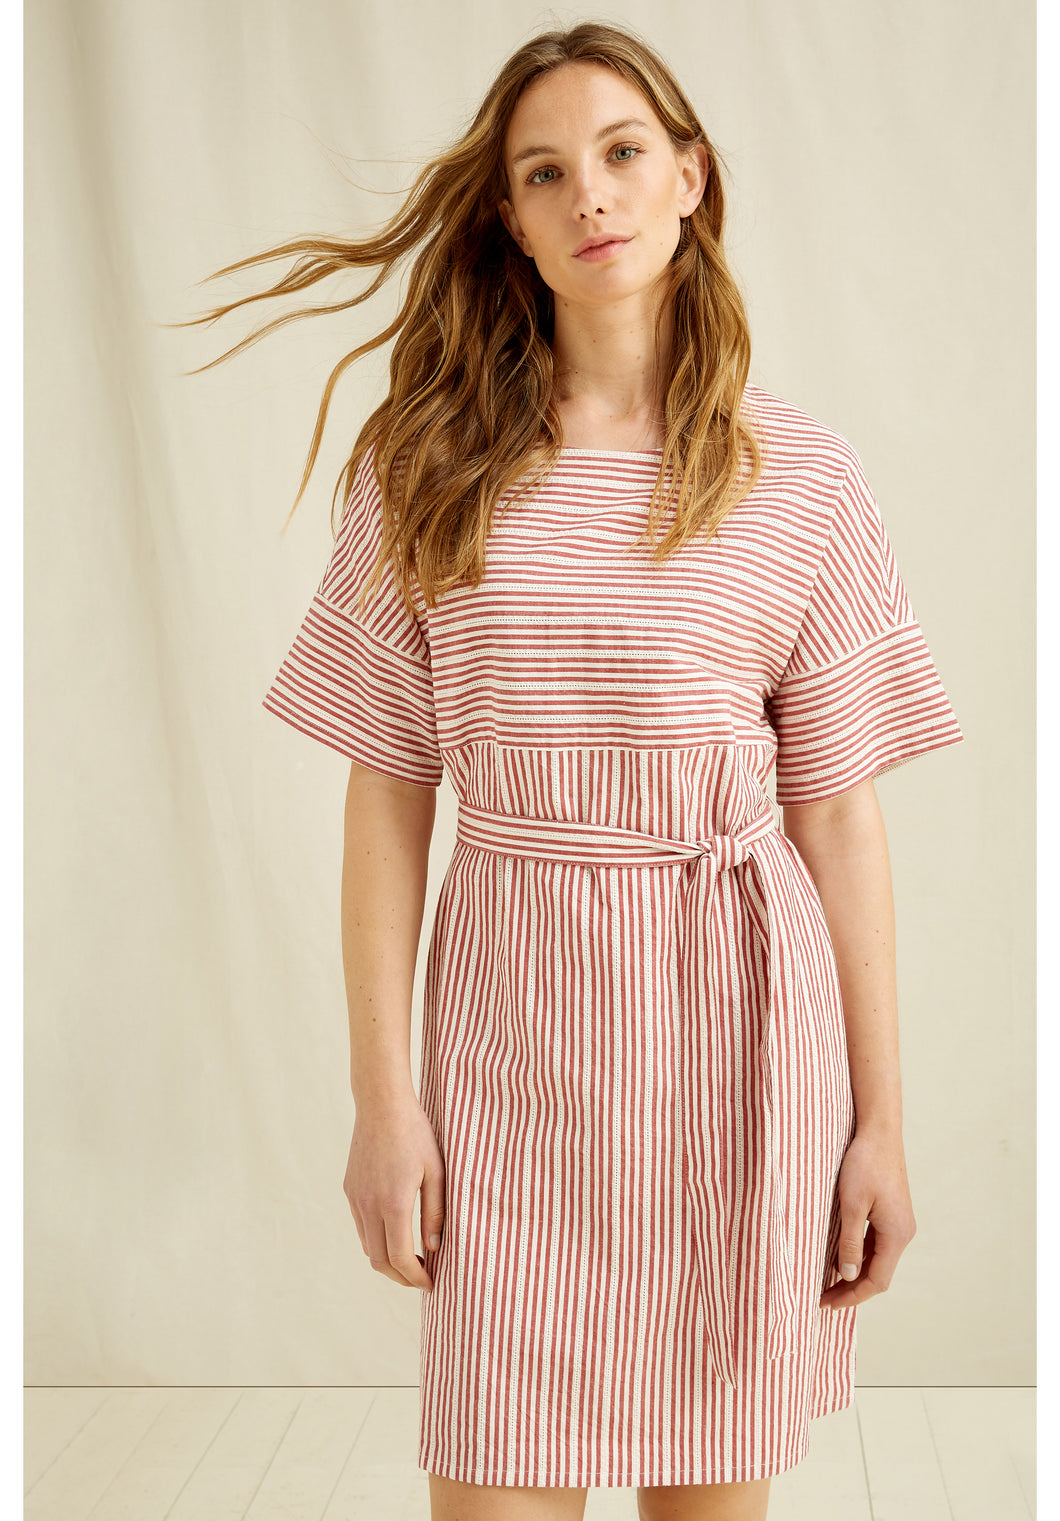 Organic Cotton Handwoven Dress - Red and White Stripe